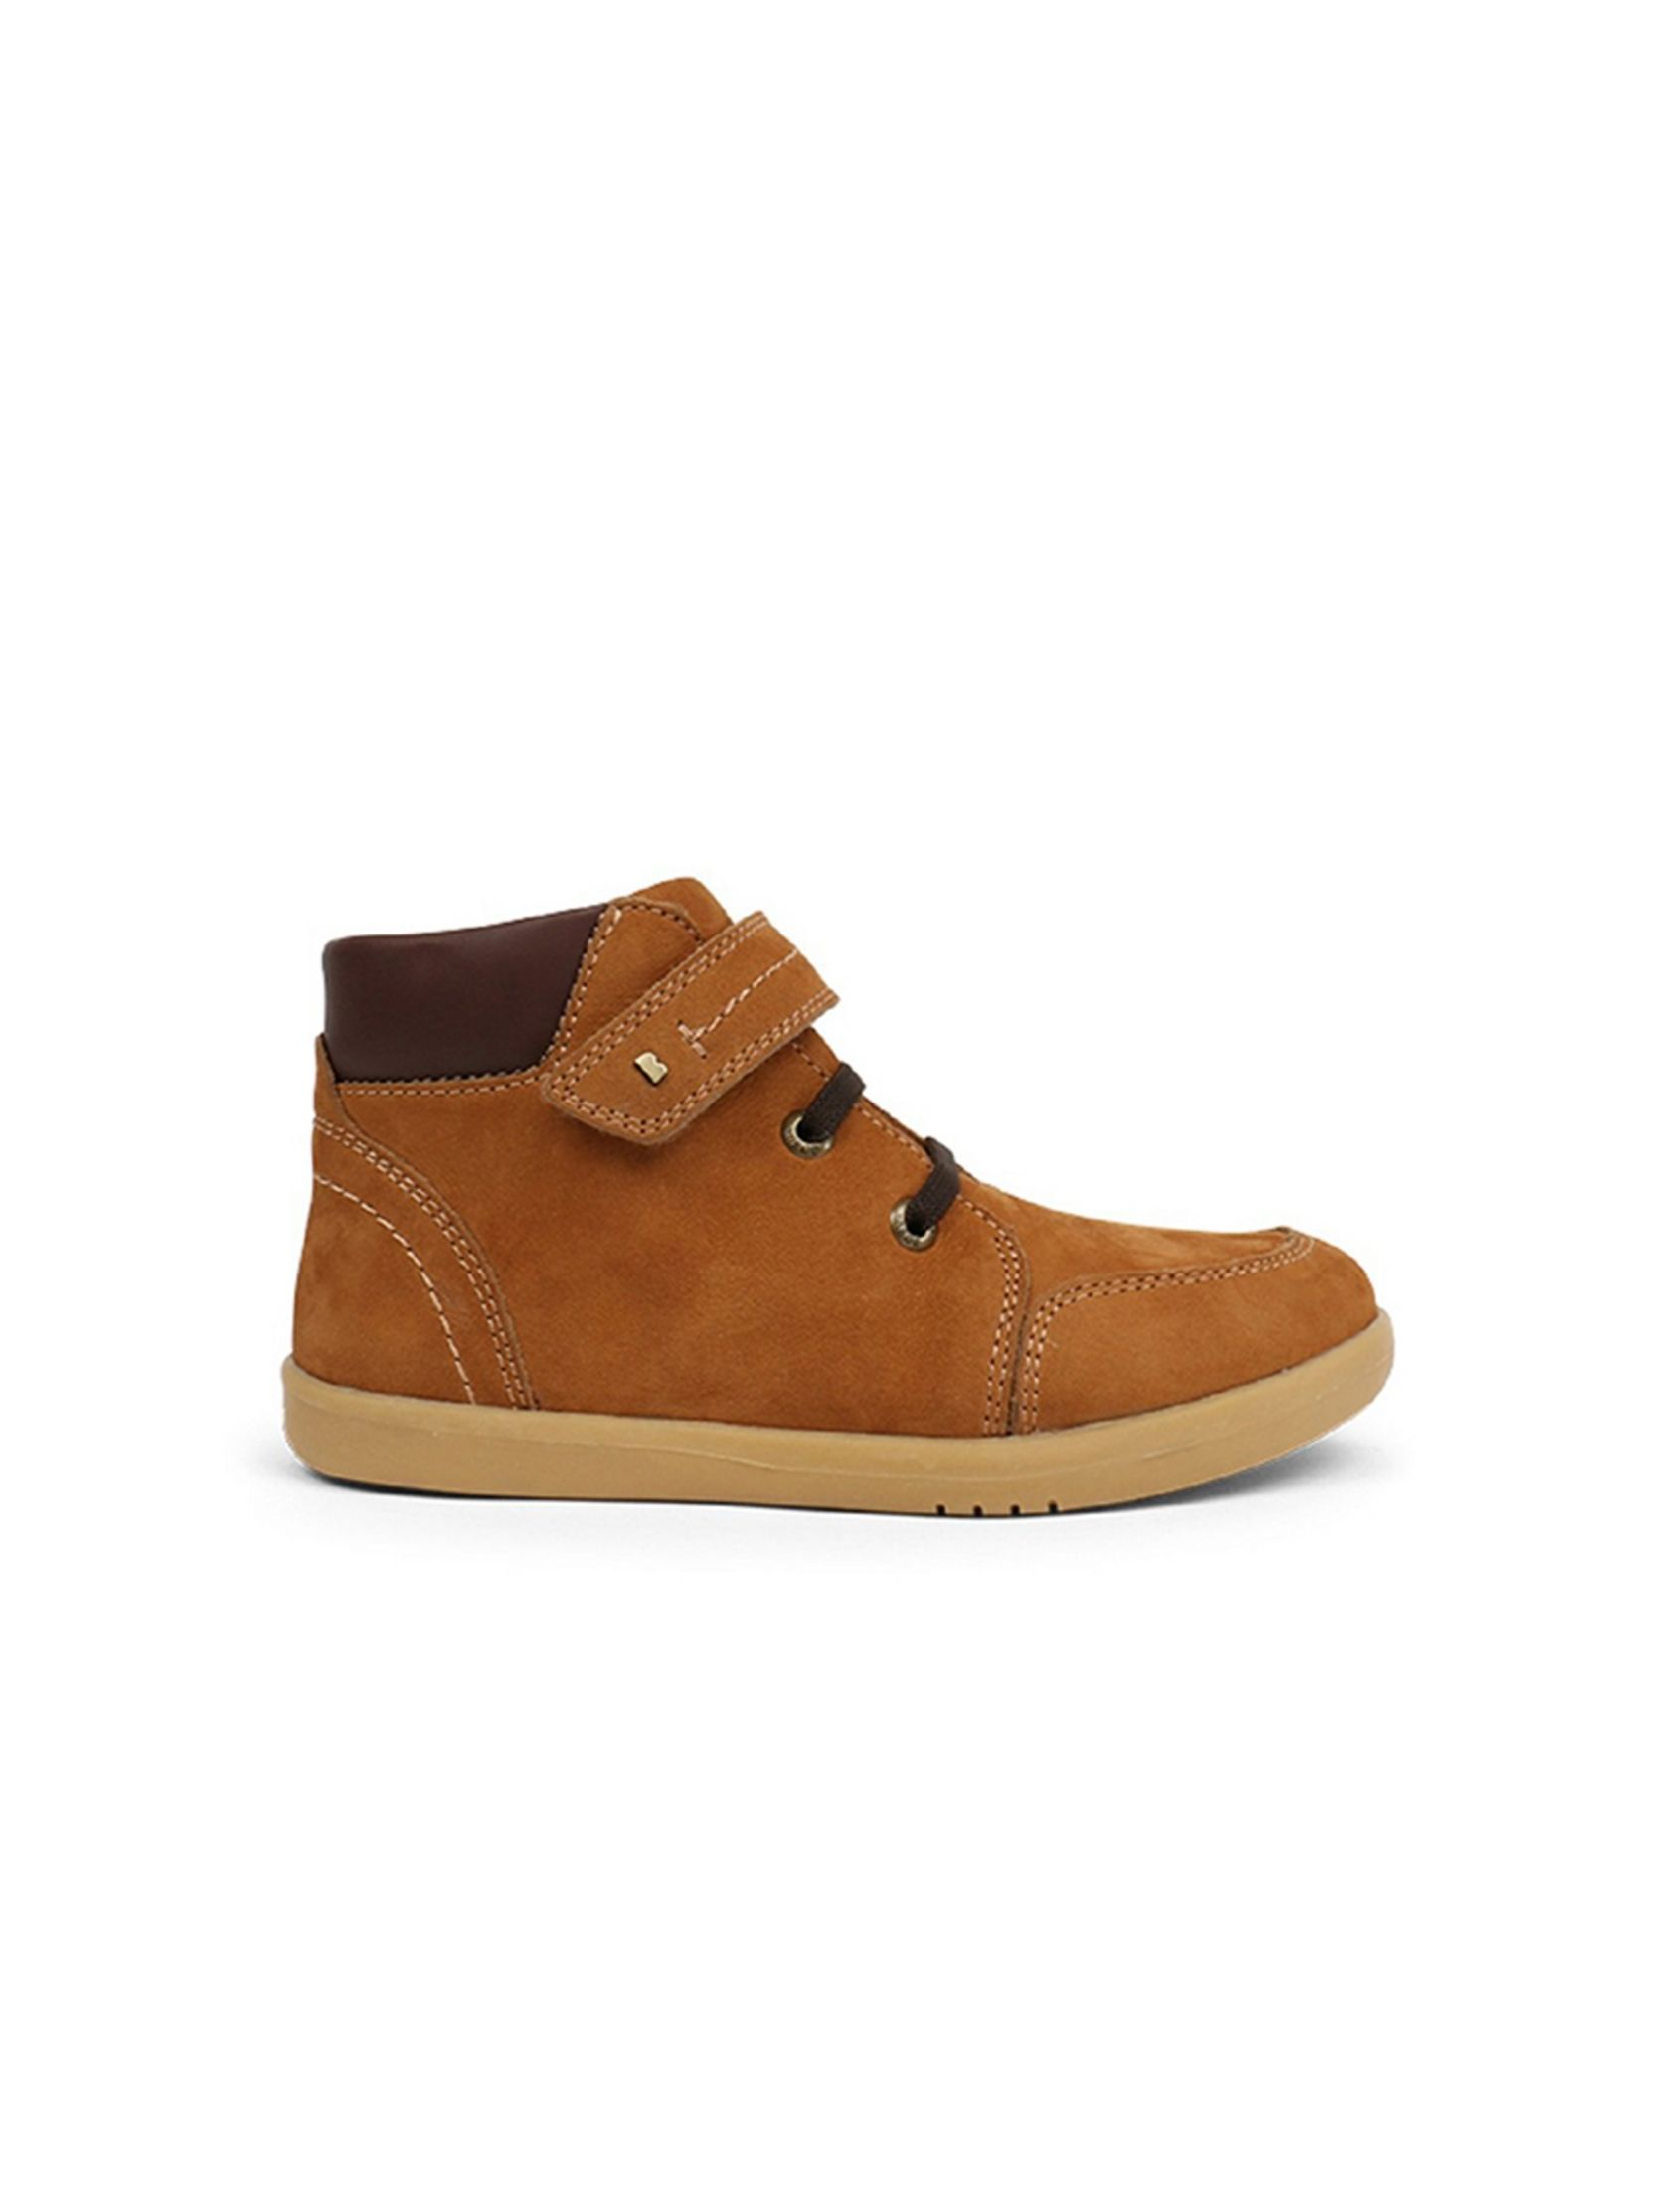 Bota_I Walk Timber Mustard_ Bobux_MAMALUA_01